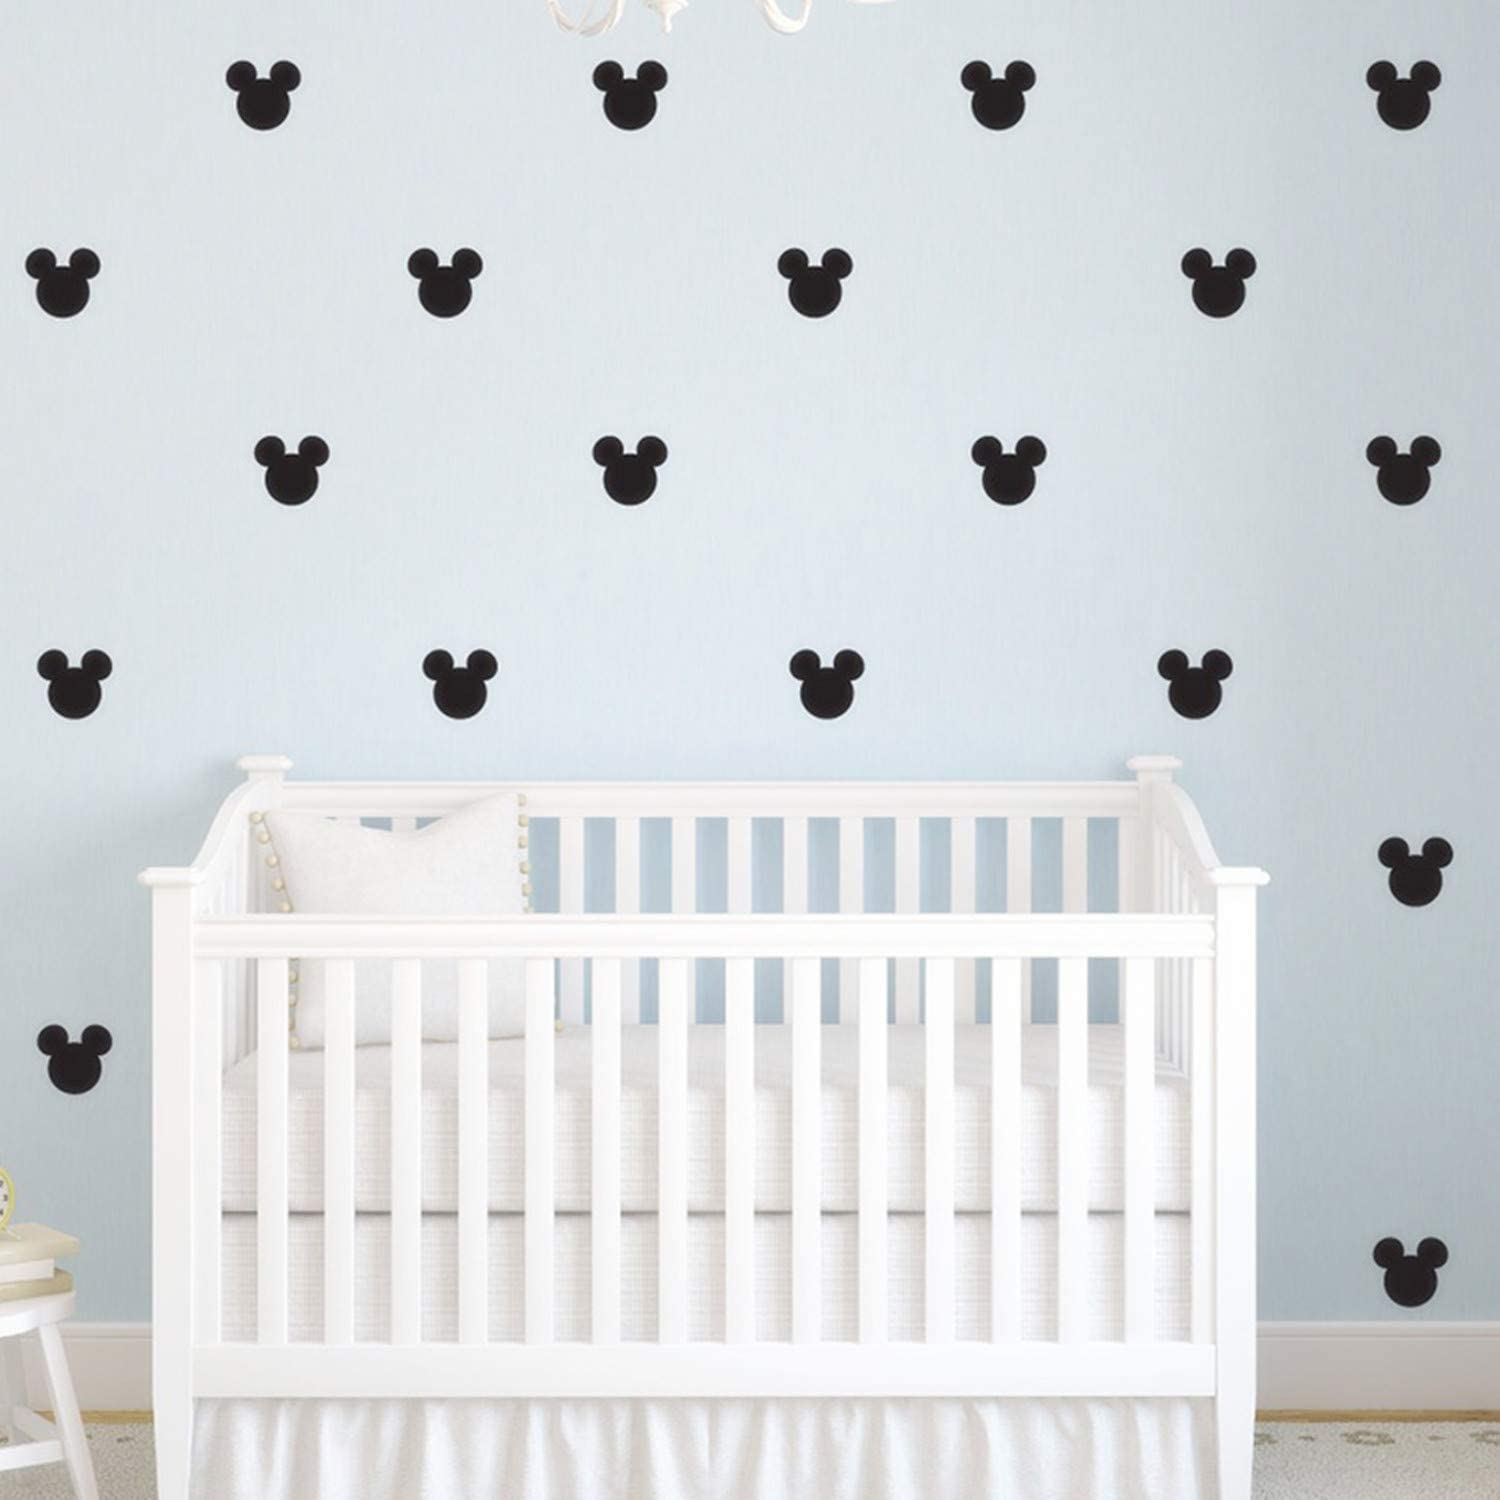 176pcs Cartoon Mickey Mouse Head Art Wall High quality new Charlotte Mall for Kids Room Decals B